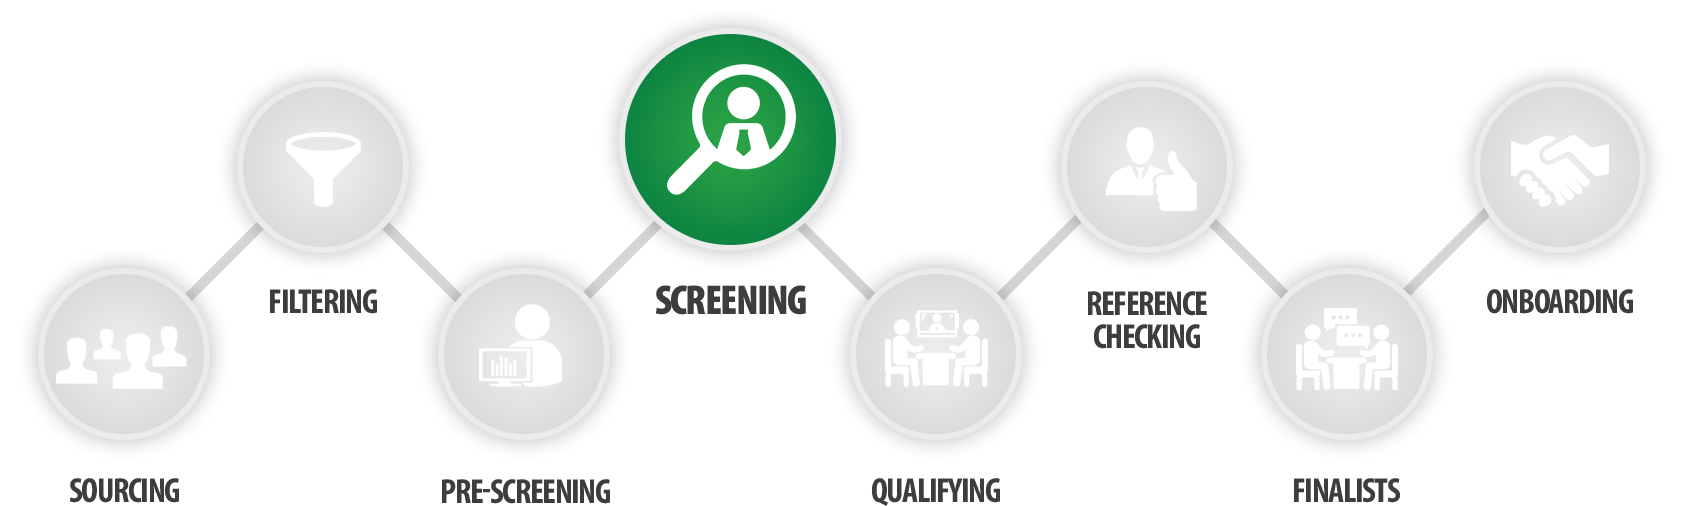 The Screening Stage of the Recruitment Process Workflow